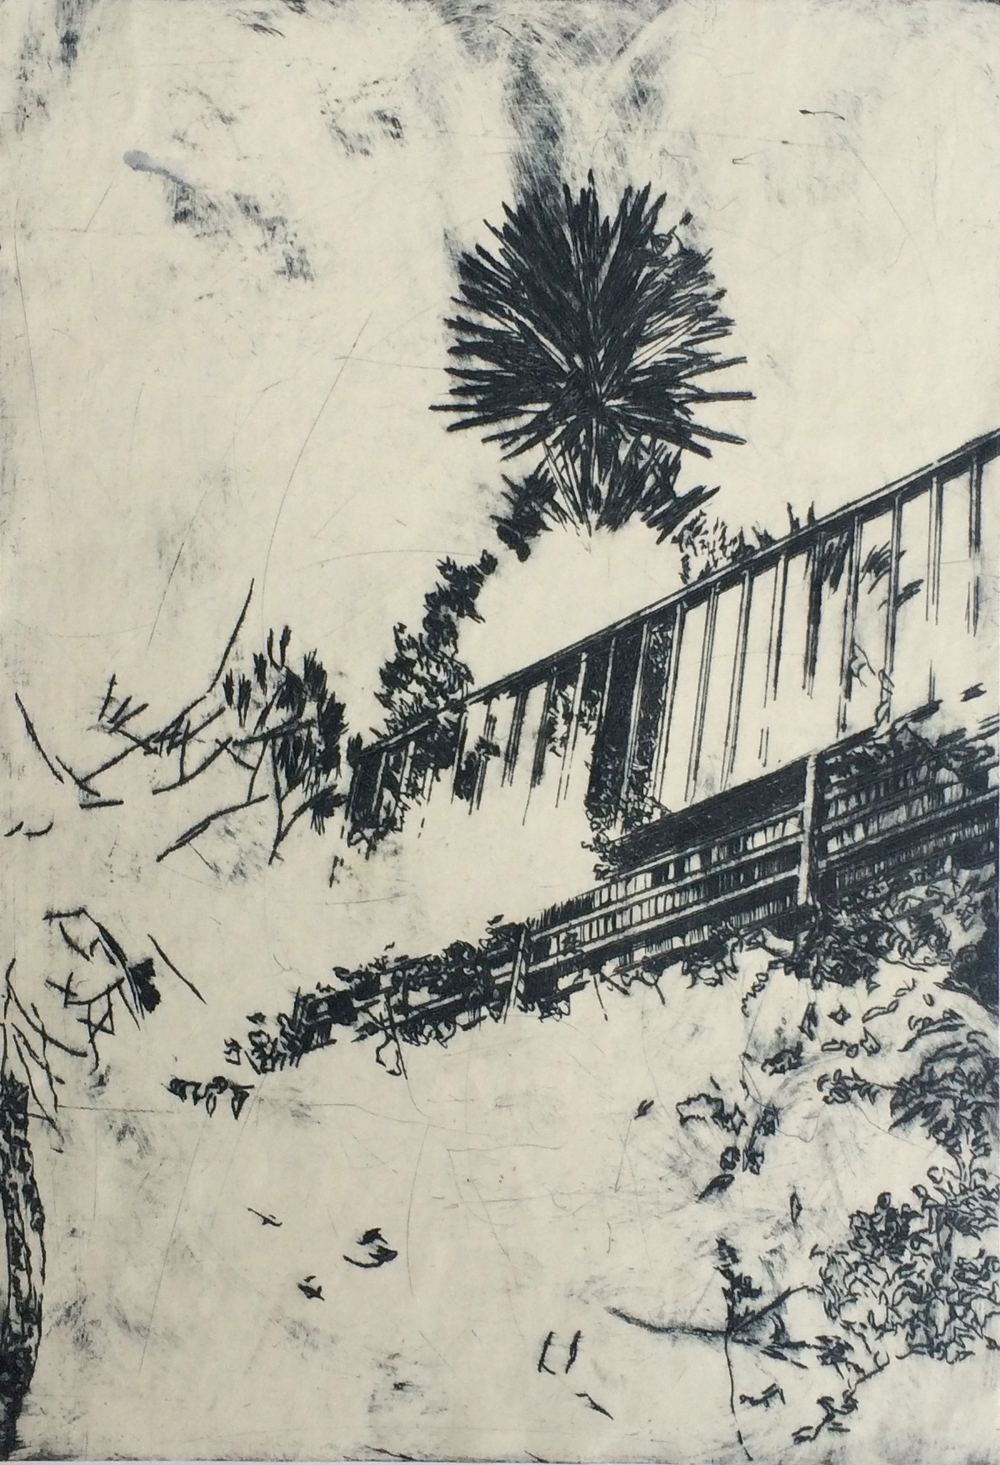 'Via Linare', 2012, etching on off-whte paper, 21 x 29.5 cm